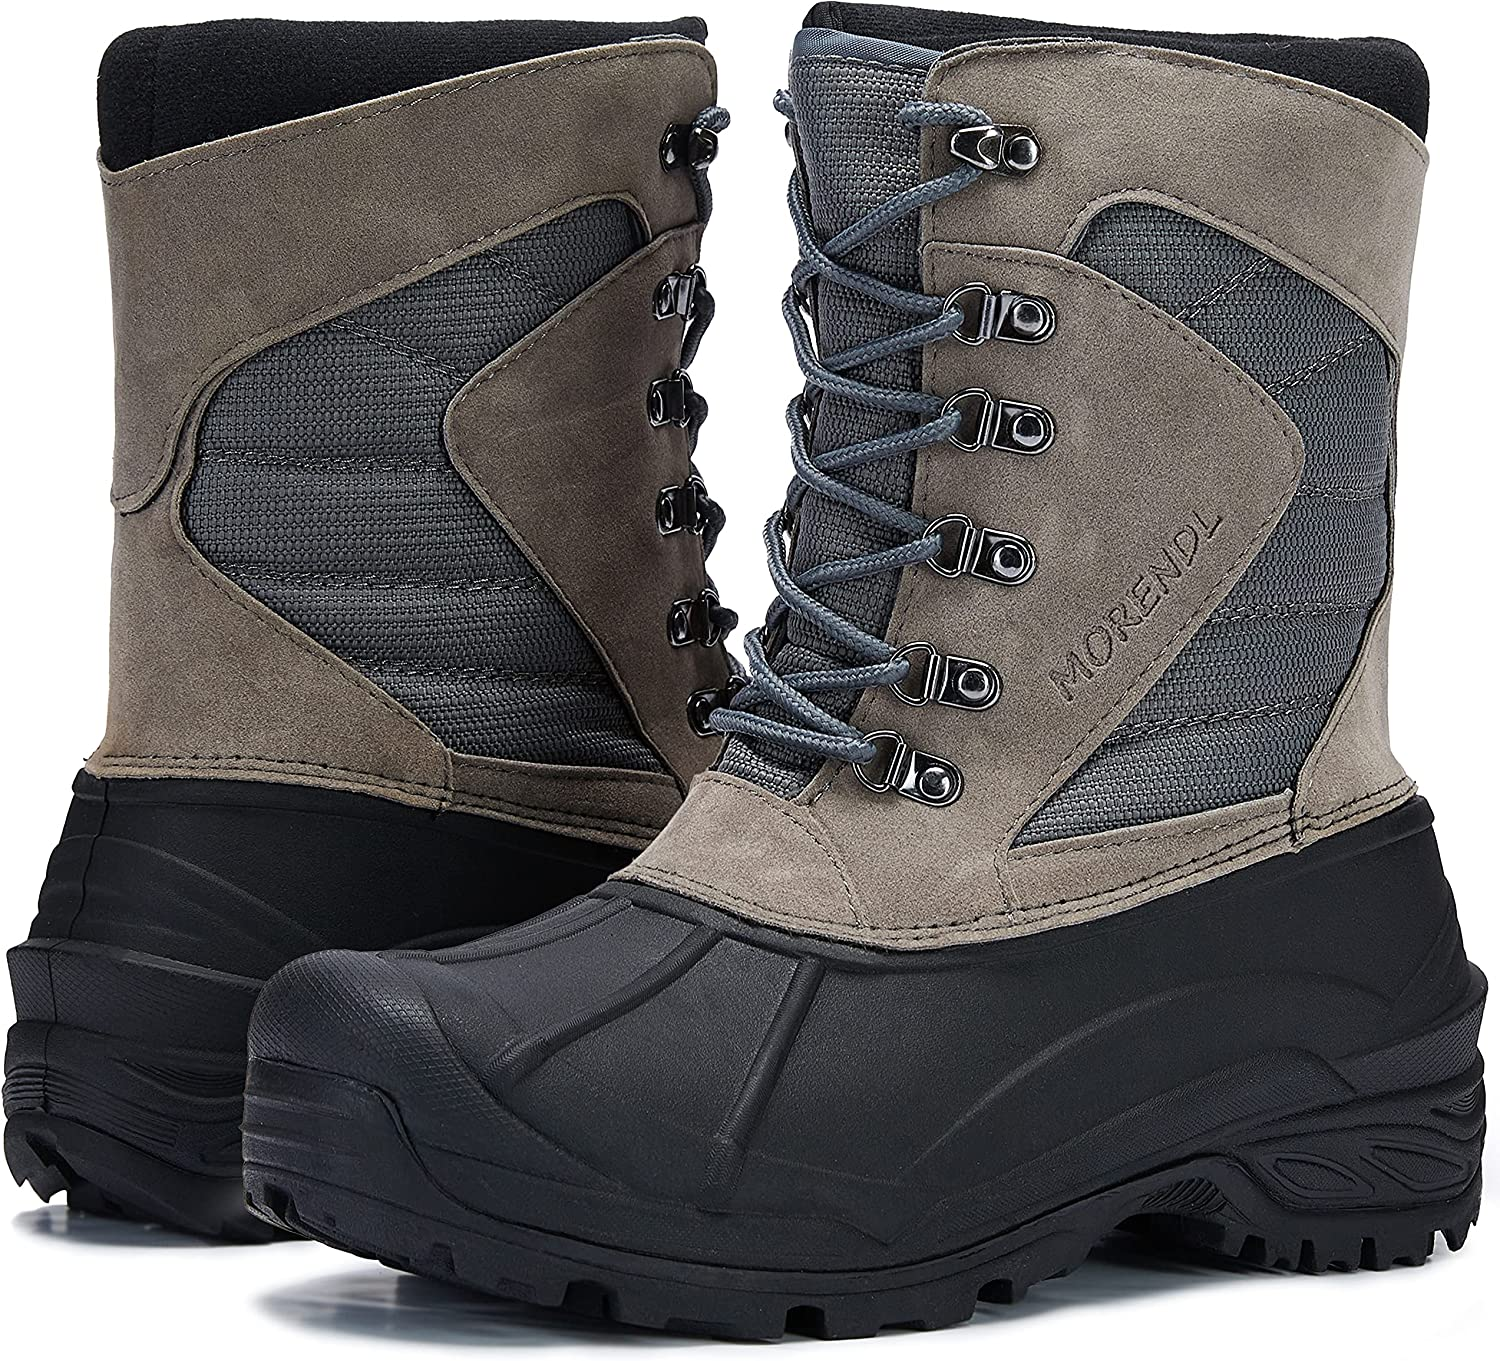 MORENDL Men's Manufacturer direct Las Vegas Mall delivery Winter Snow Boots Insulated Waterproof Non-Slip So